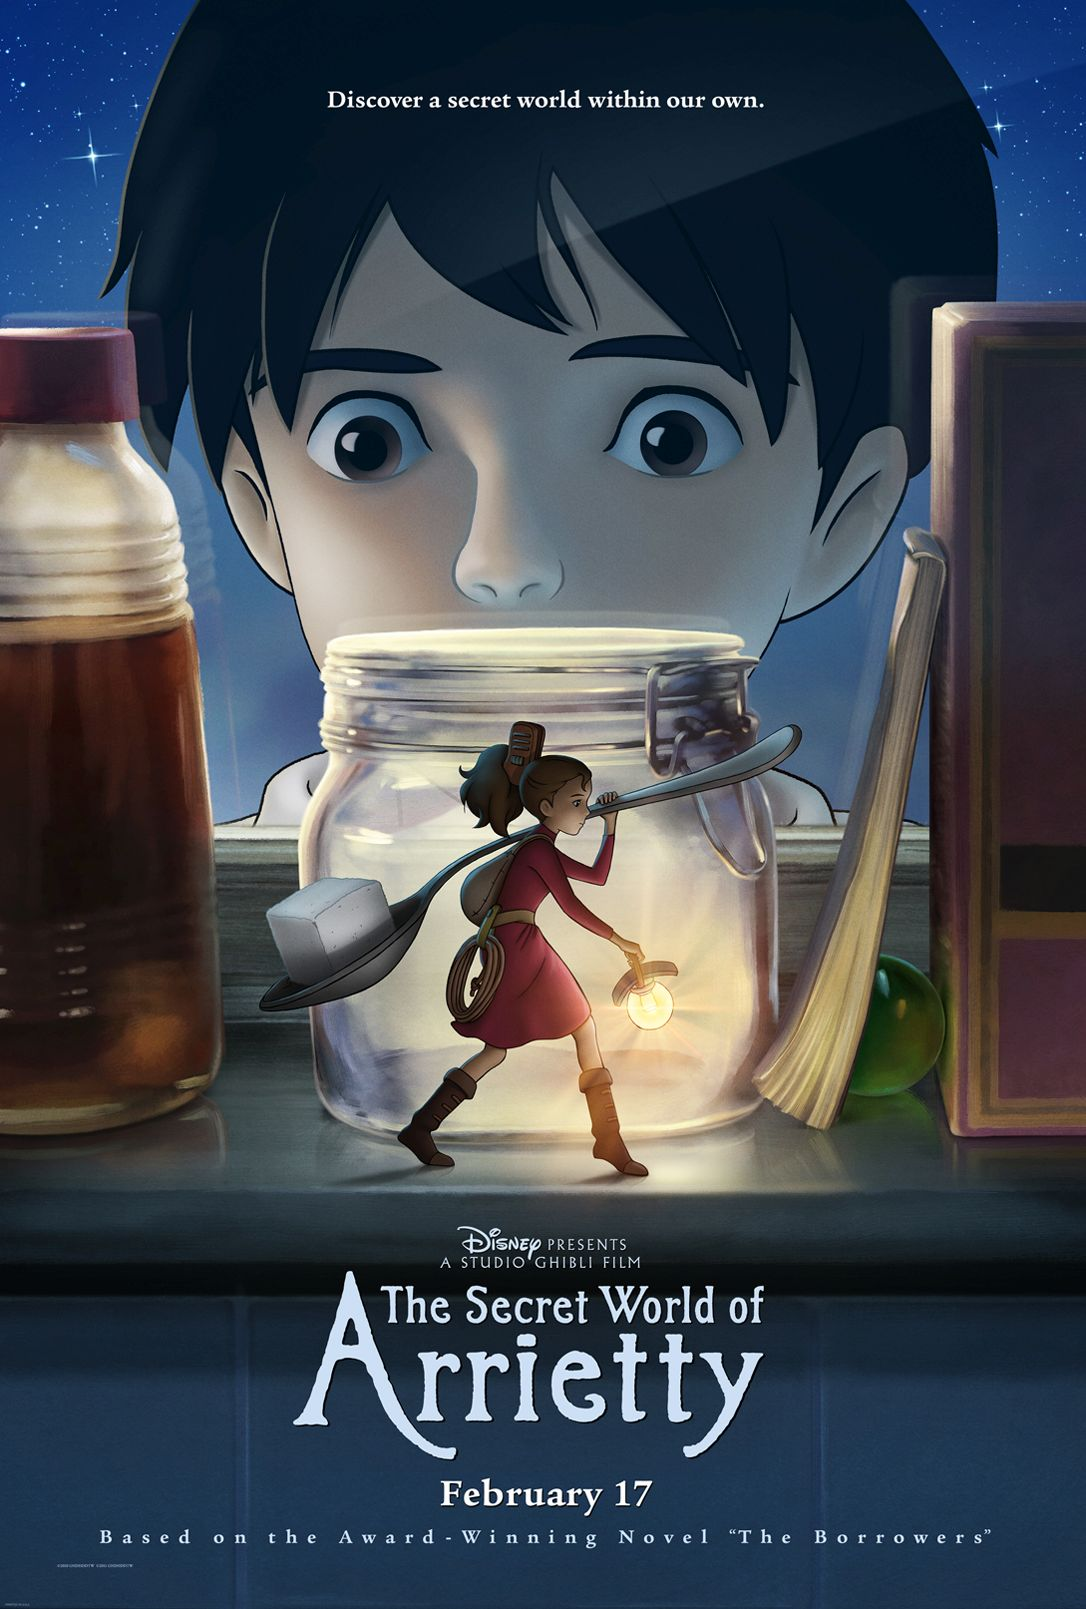 Index of Secret http://www.absoluteanime.com/secret_world_of_arrietty/index.htm